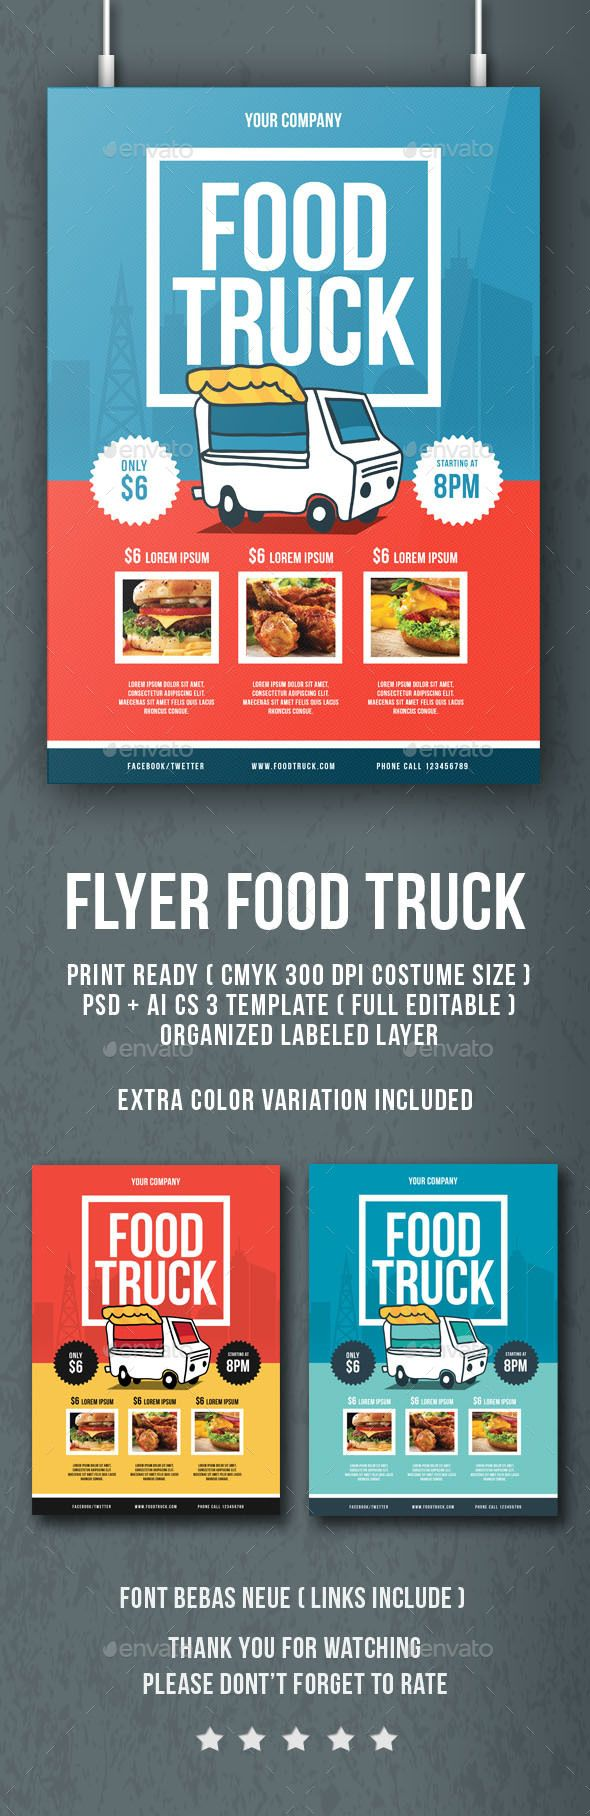 flyers for food